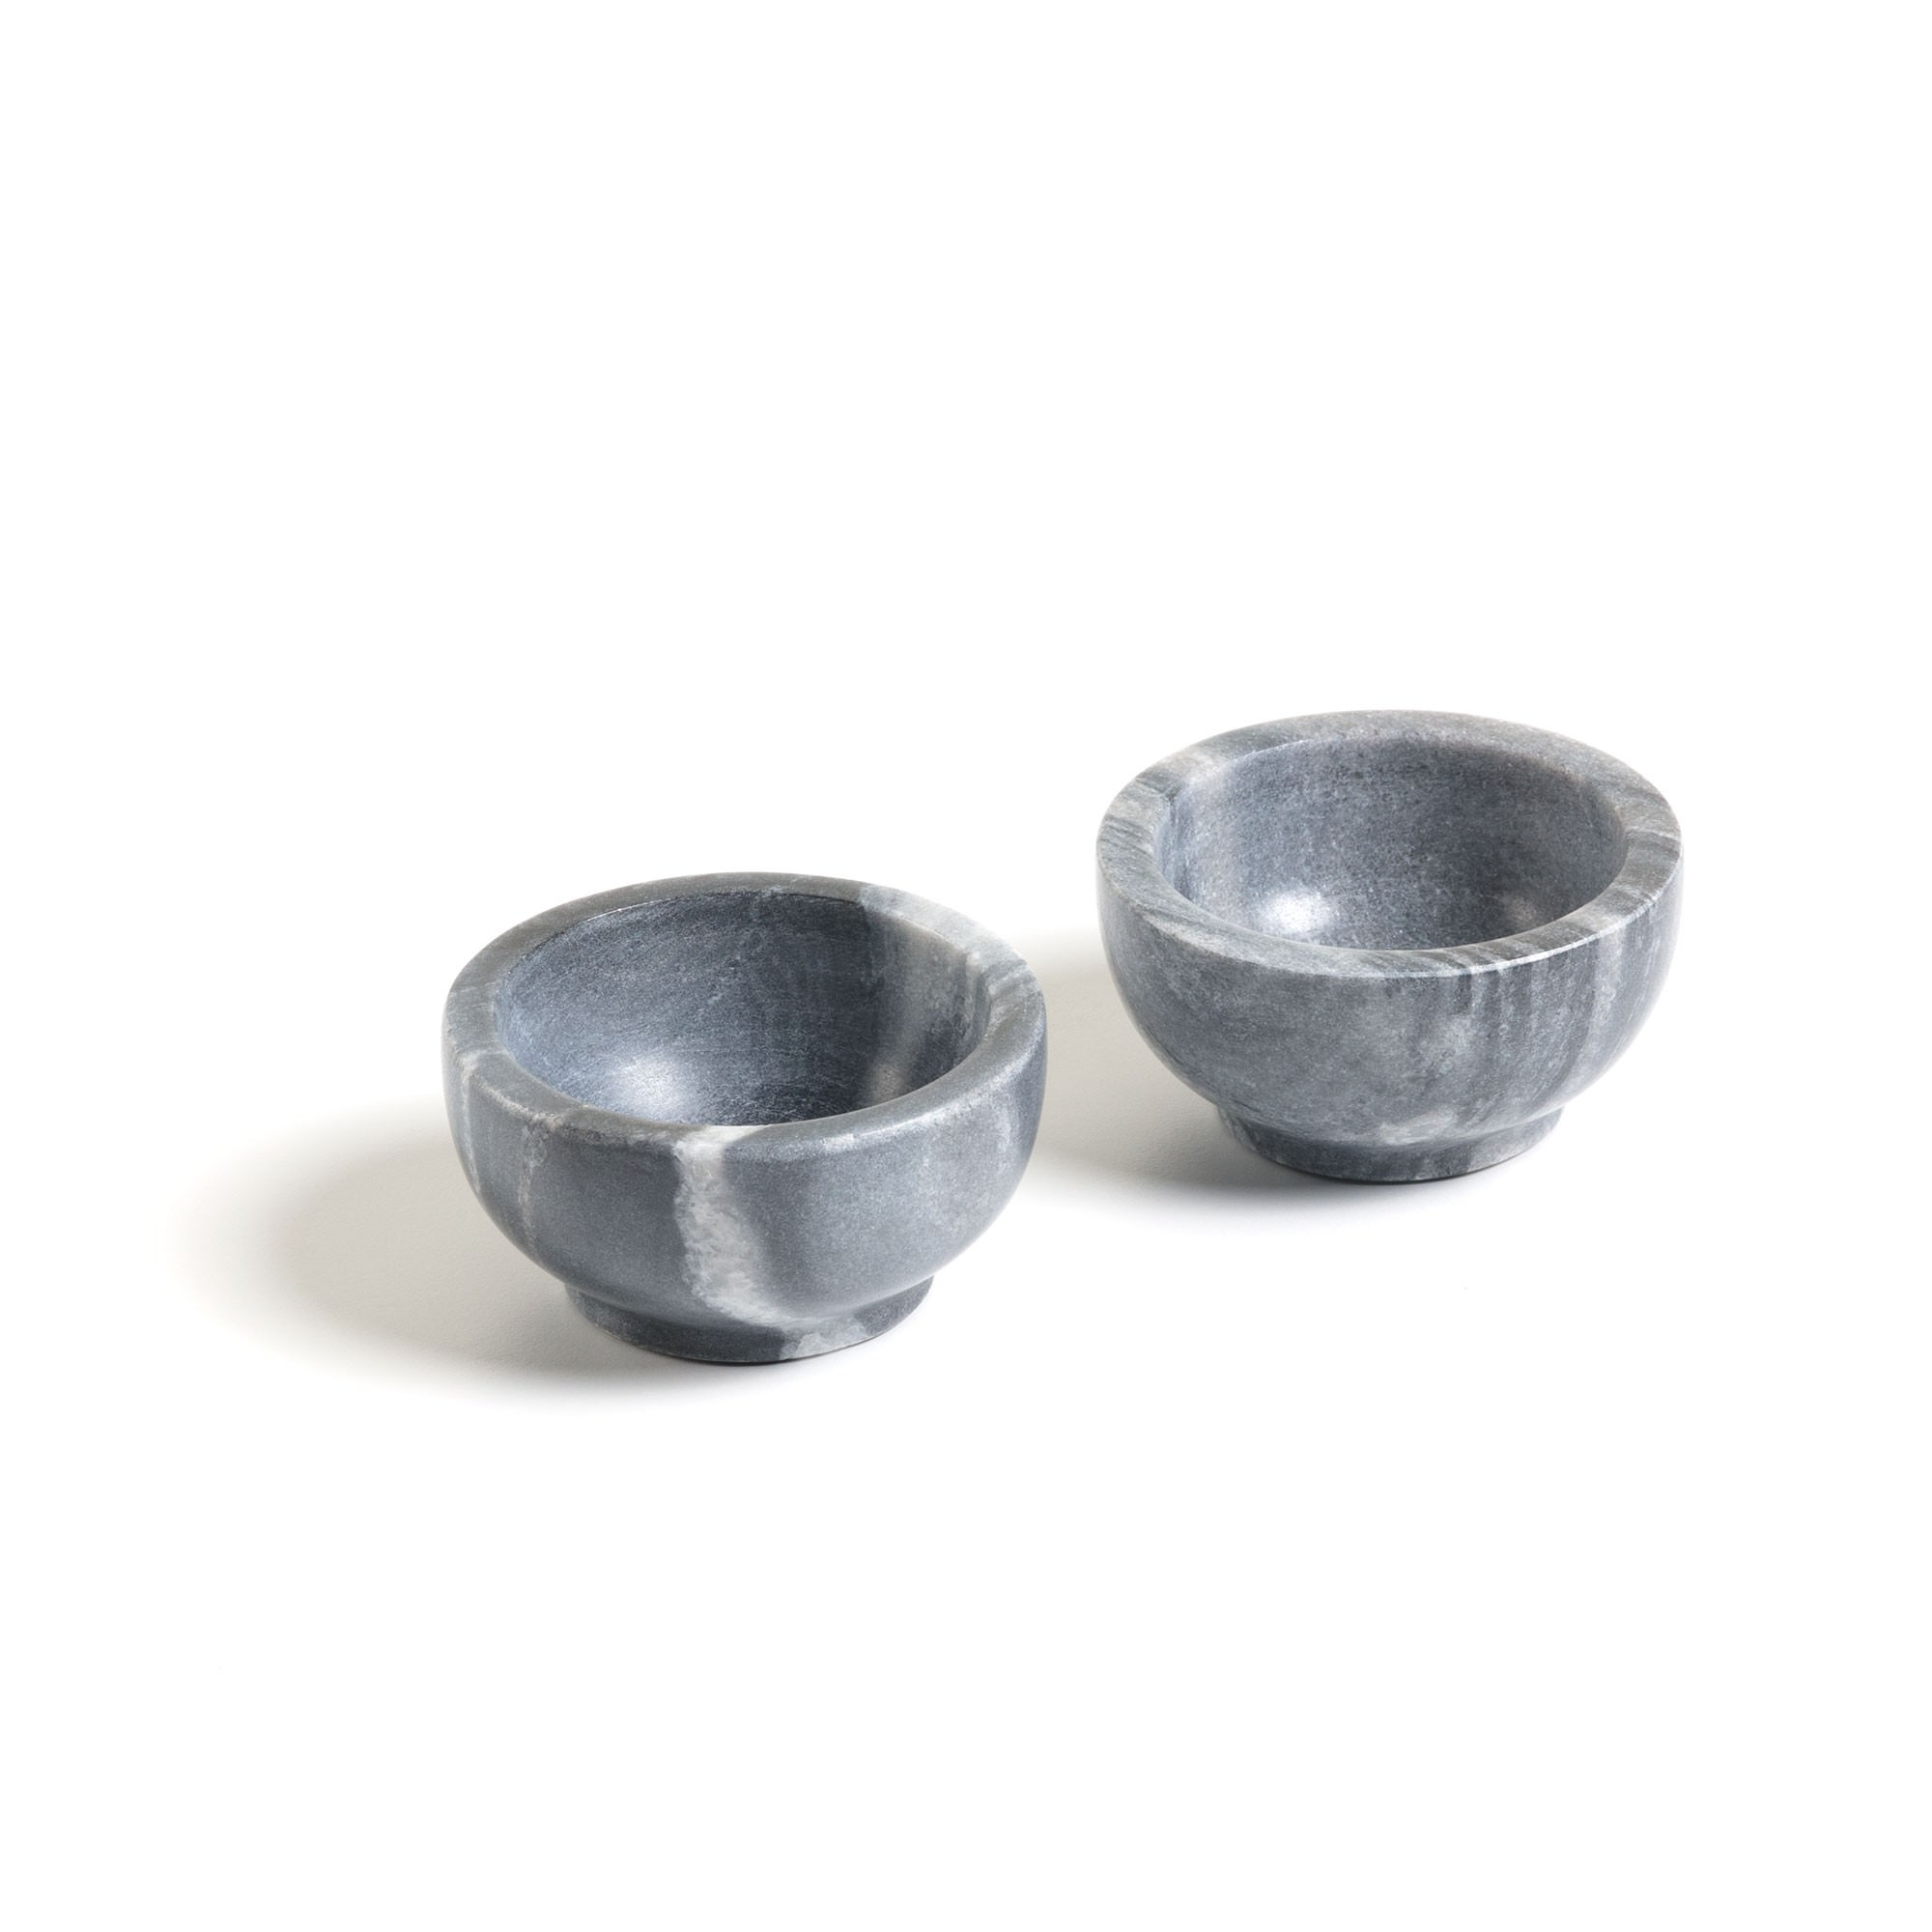 Rossmore Marble Condiment Bowl, Set of 2, Grey